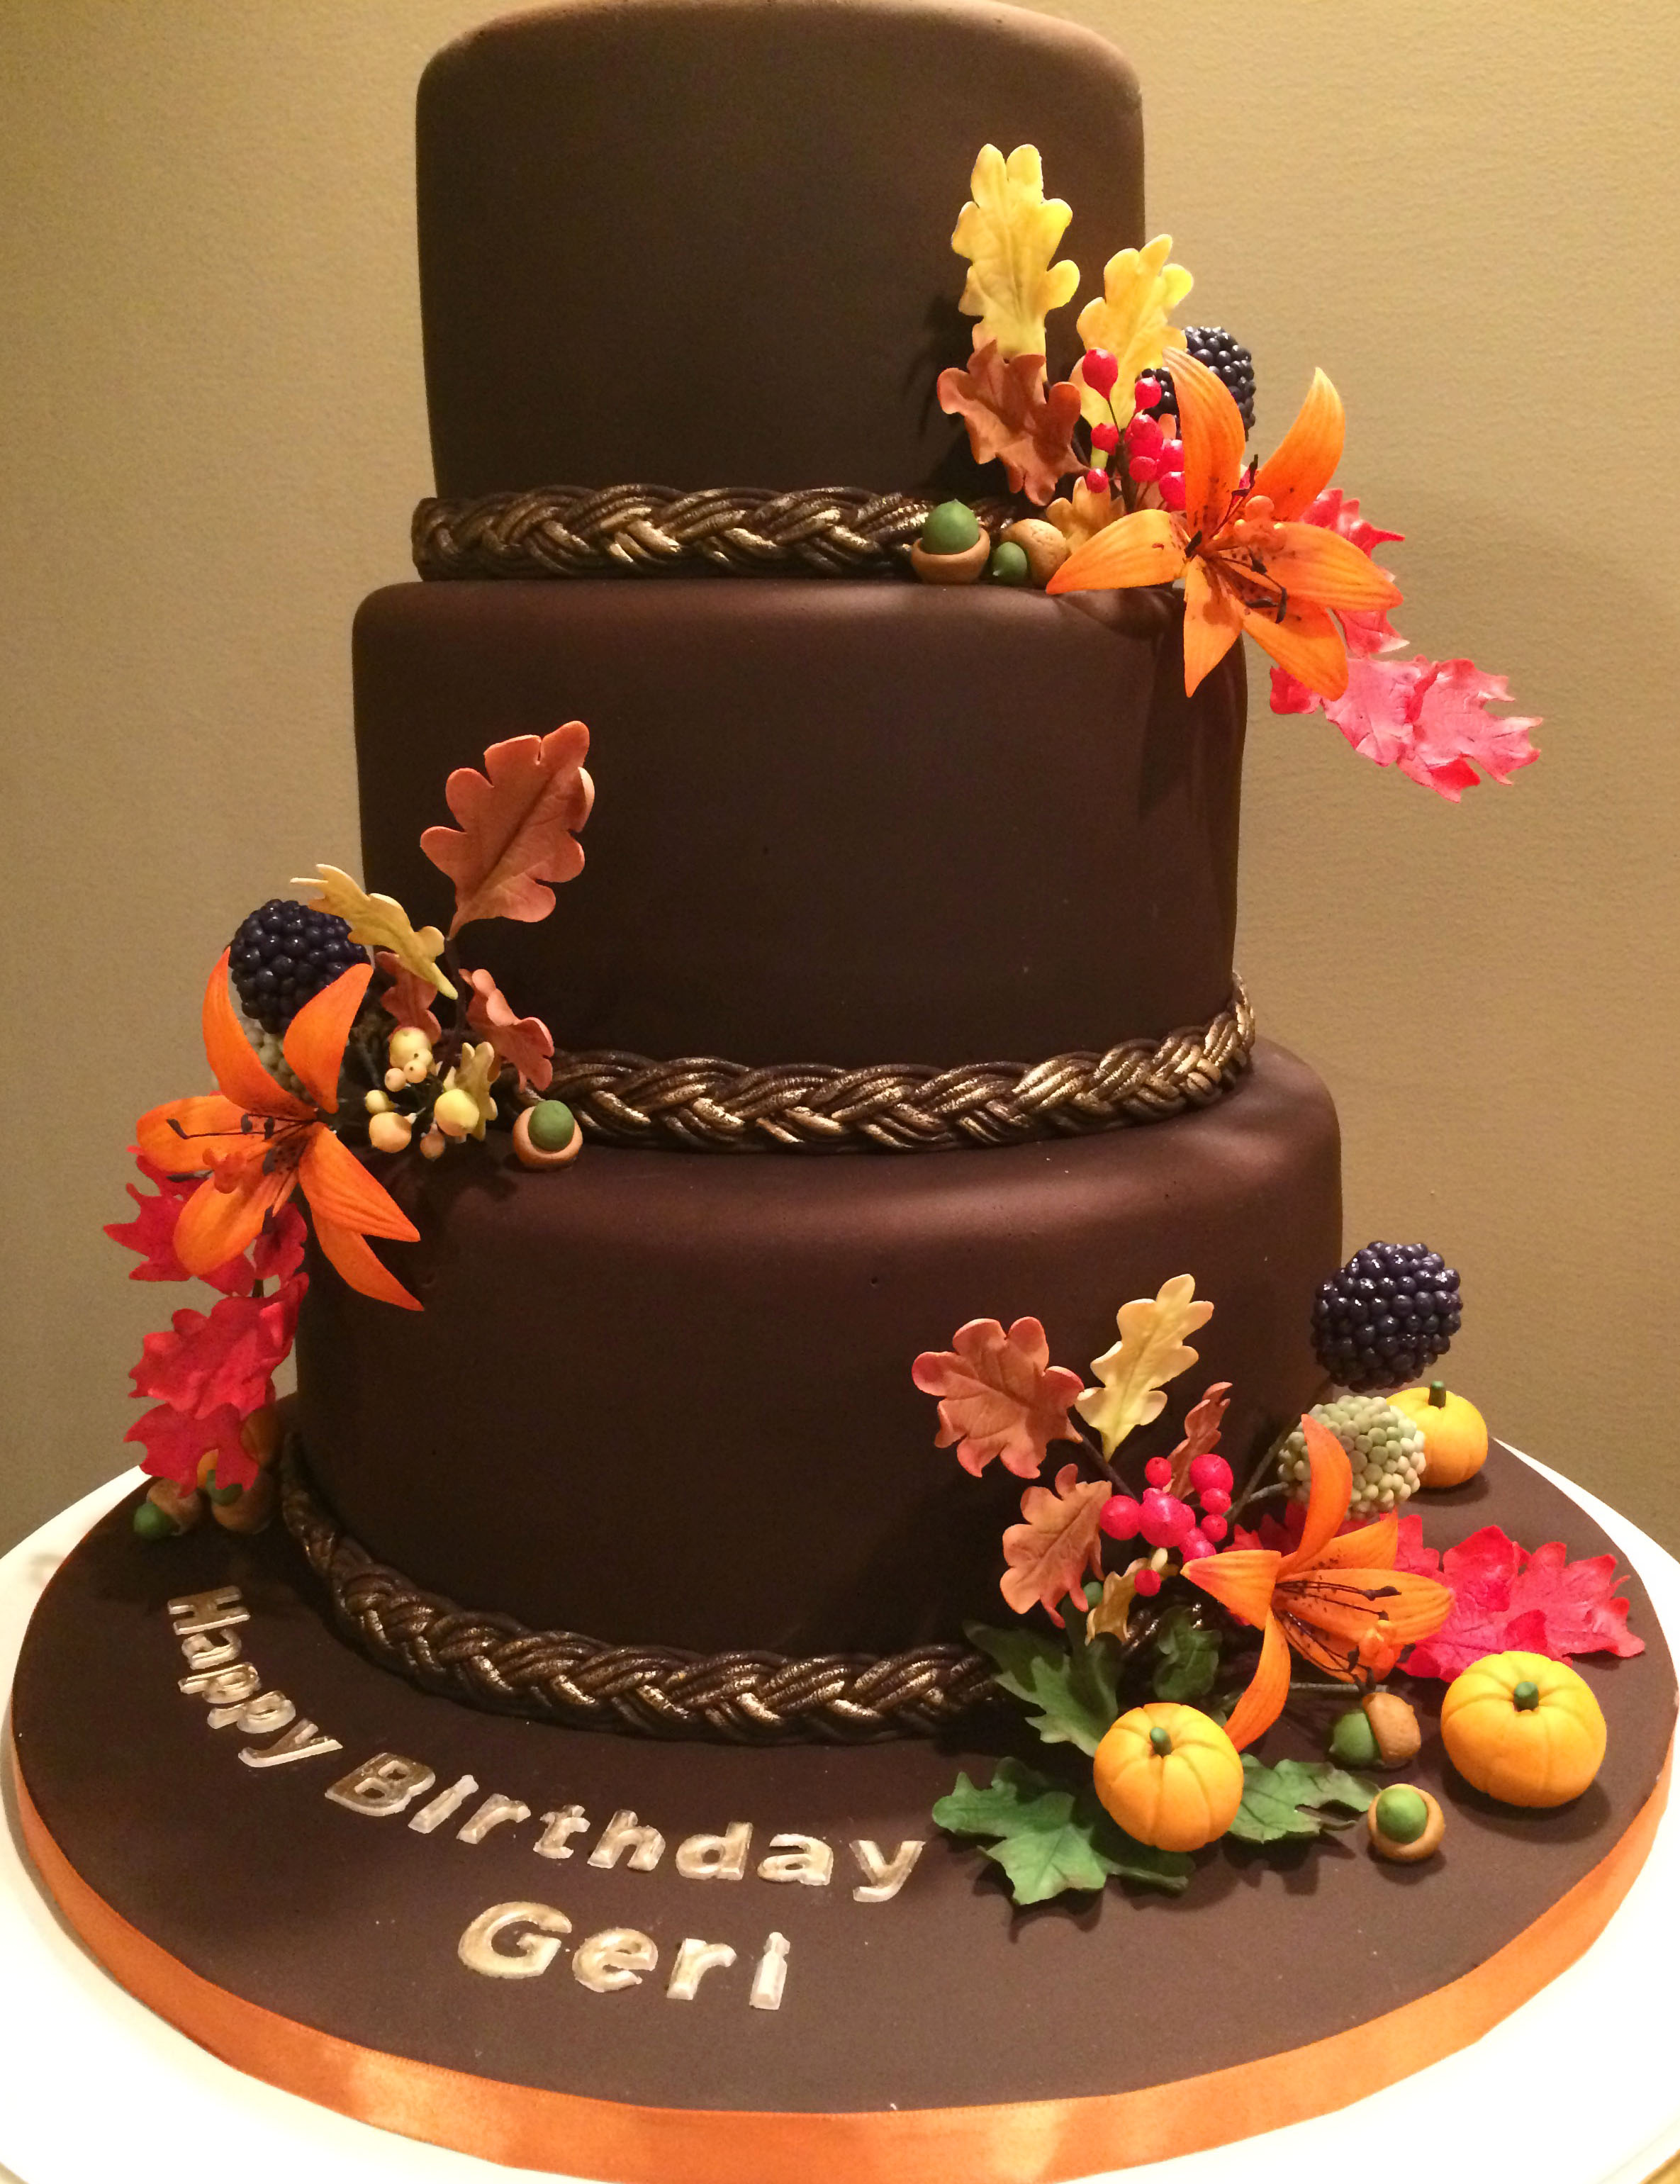 An autumn birthday celebration